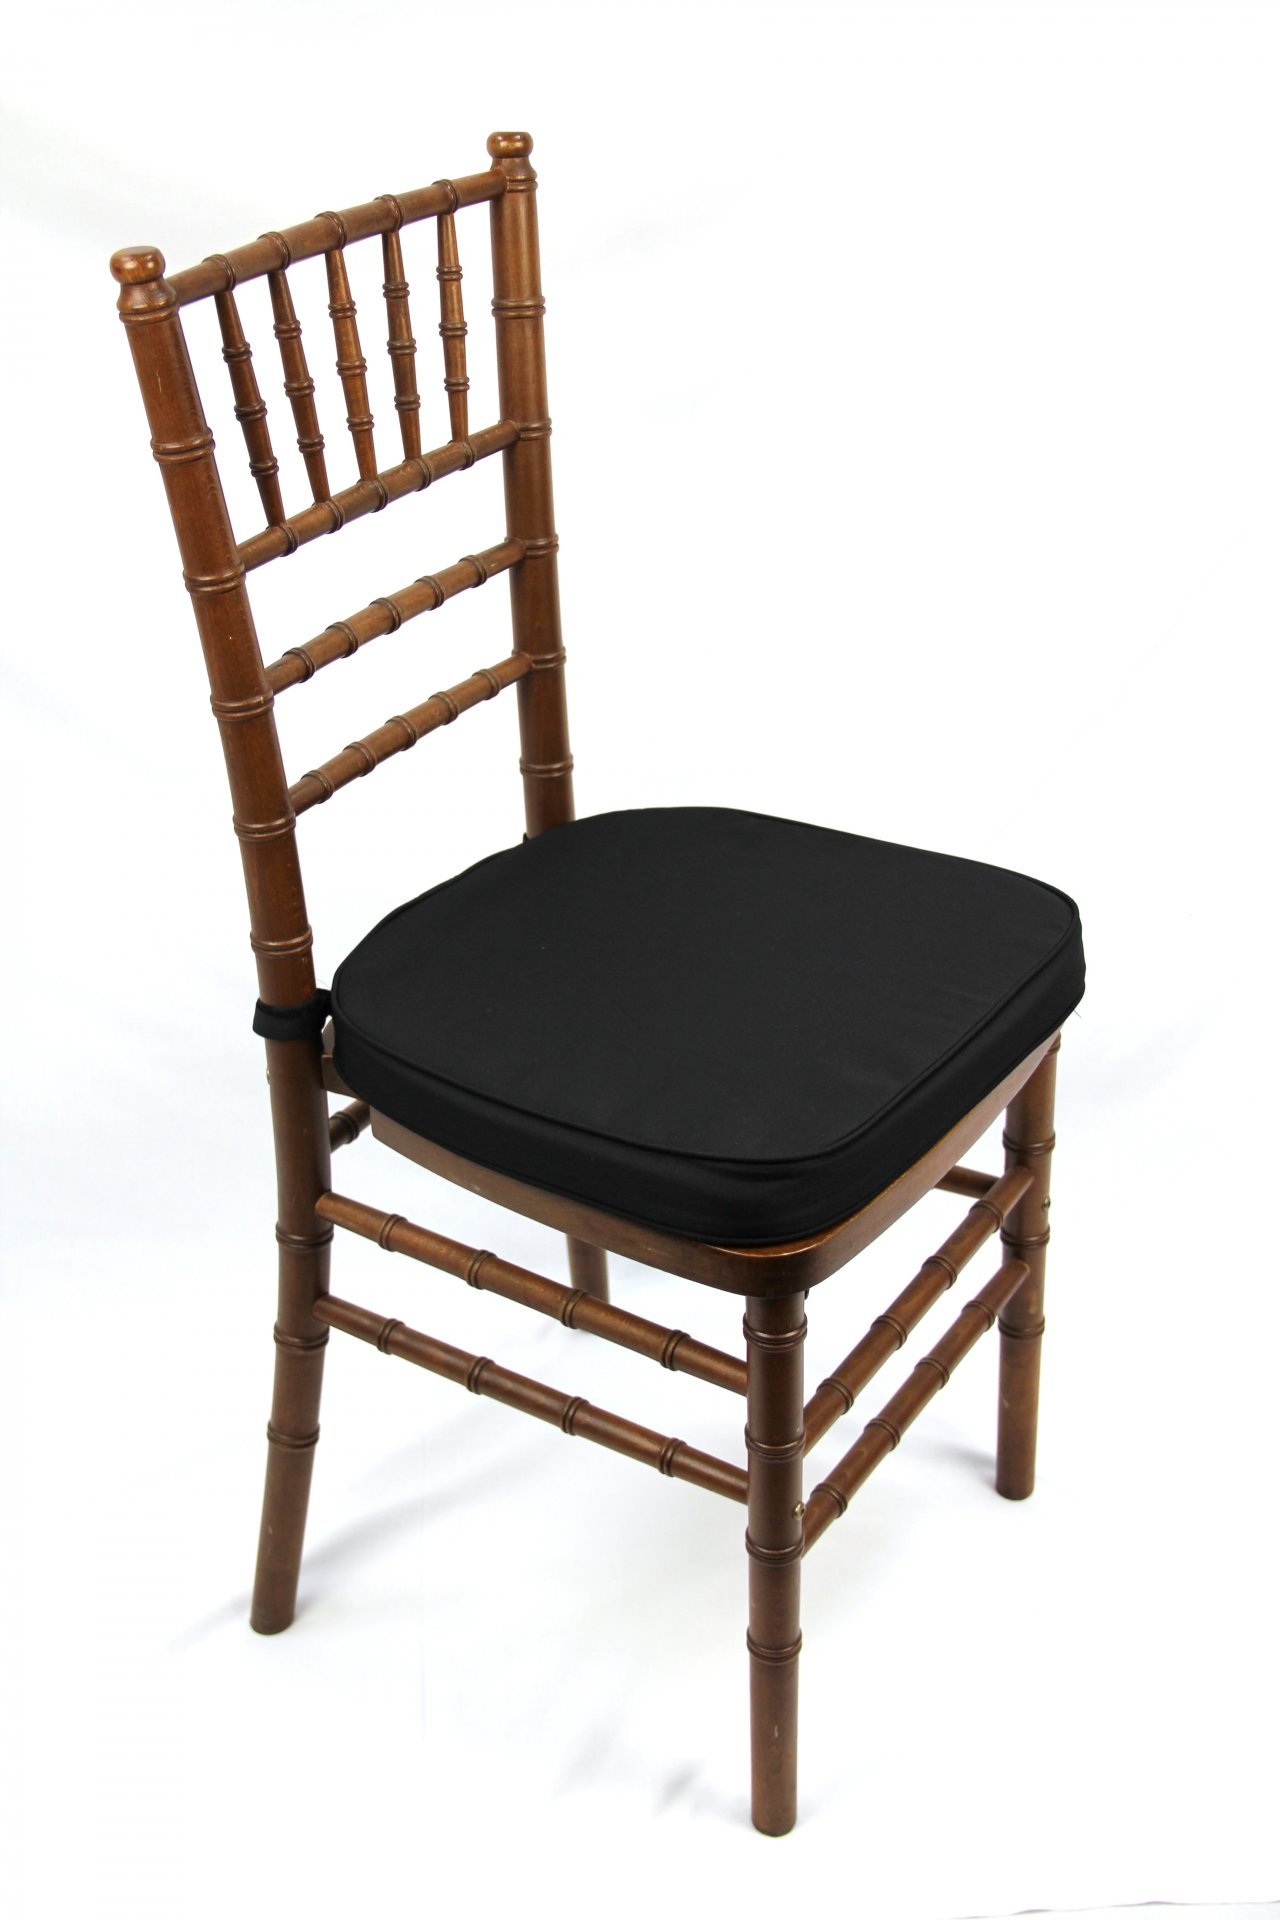 chiavari chairs china sage green upholstered dining fruitwood ballroom chair united rent all omaha